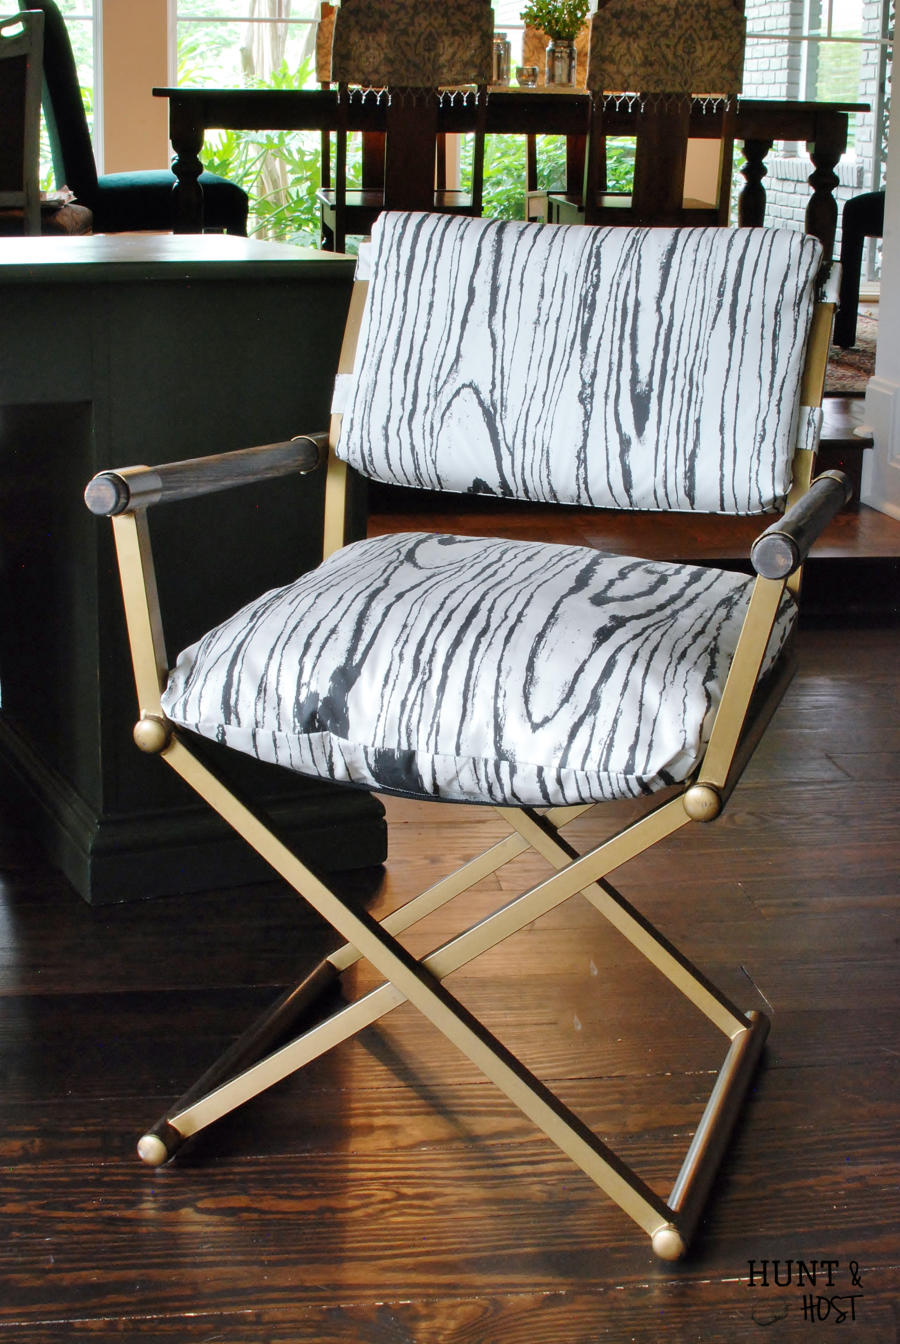 Charming This Mid Century Desk Chair Gets A Powerful Neutral Makeover With Fois Bois  Fabric.